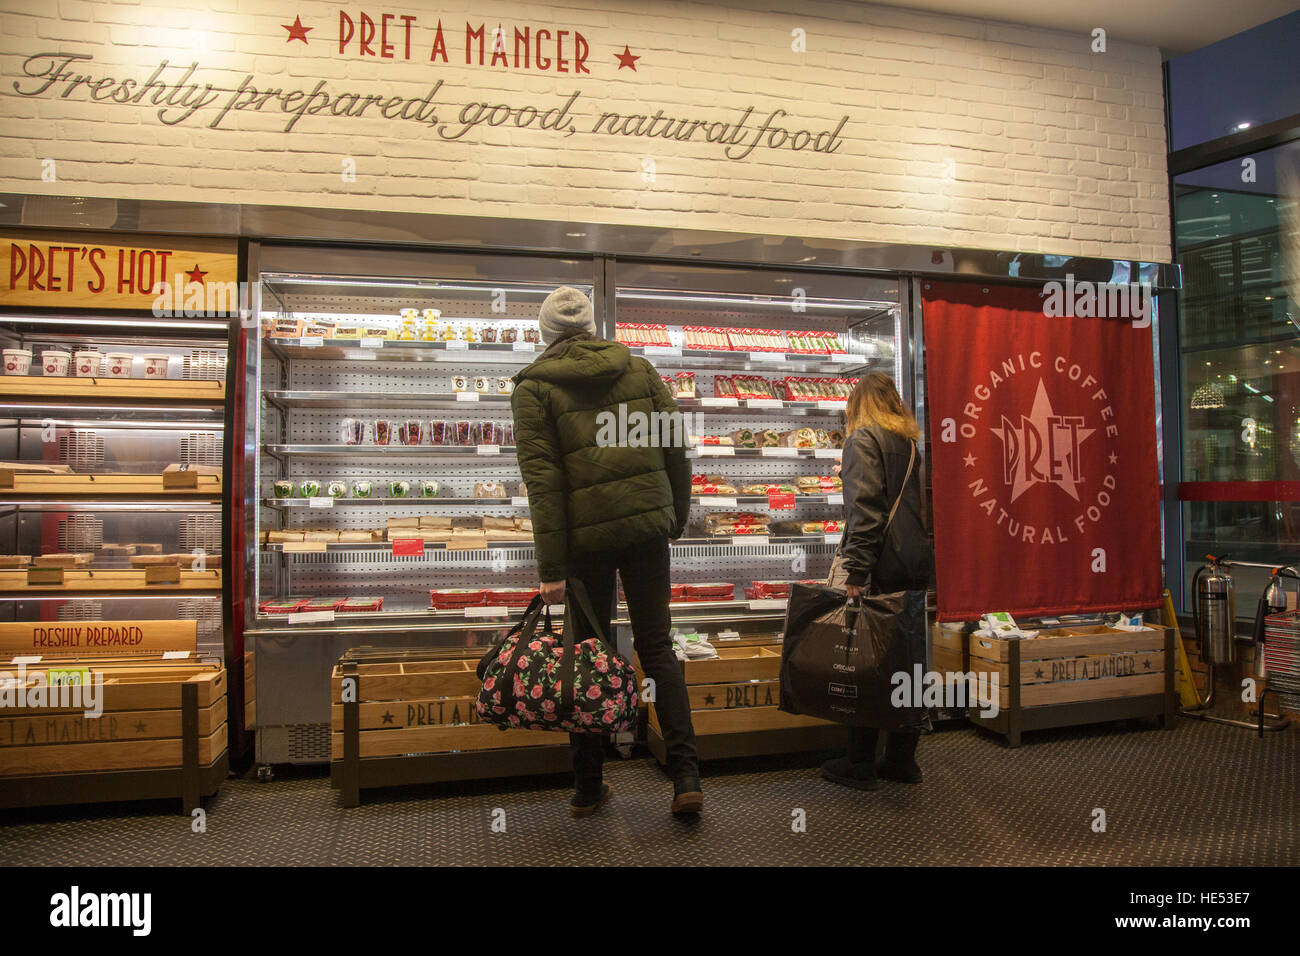 Pret a Manger, patrons selecting freshy prepared, good, natural food, Cafe in Manchester, UK Stock Photo